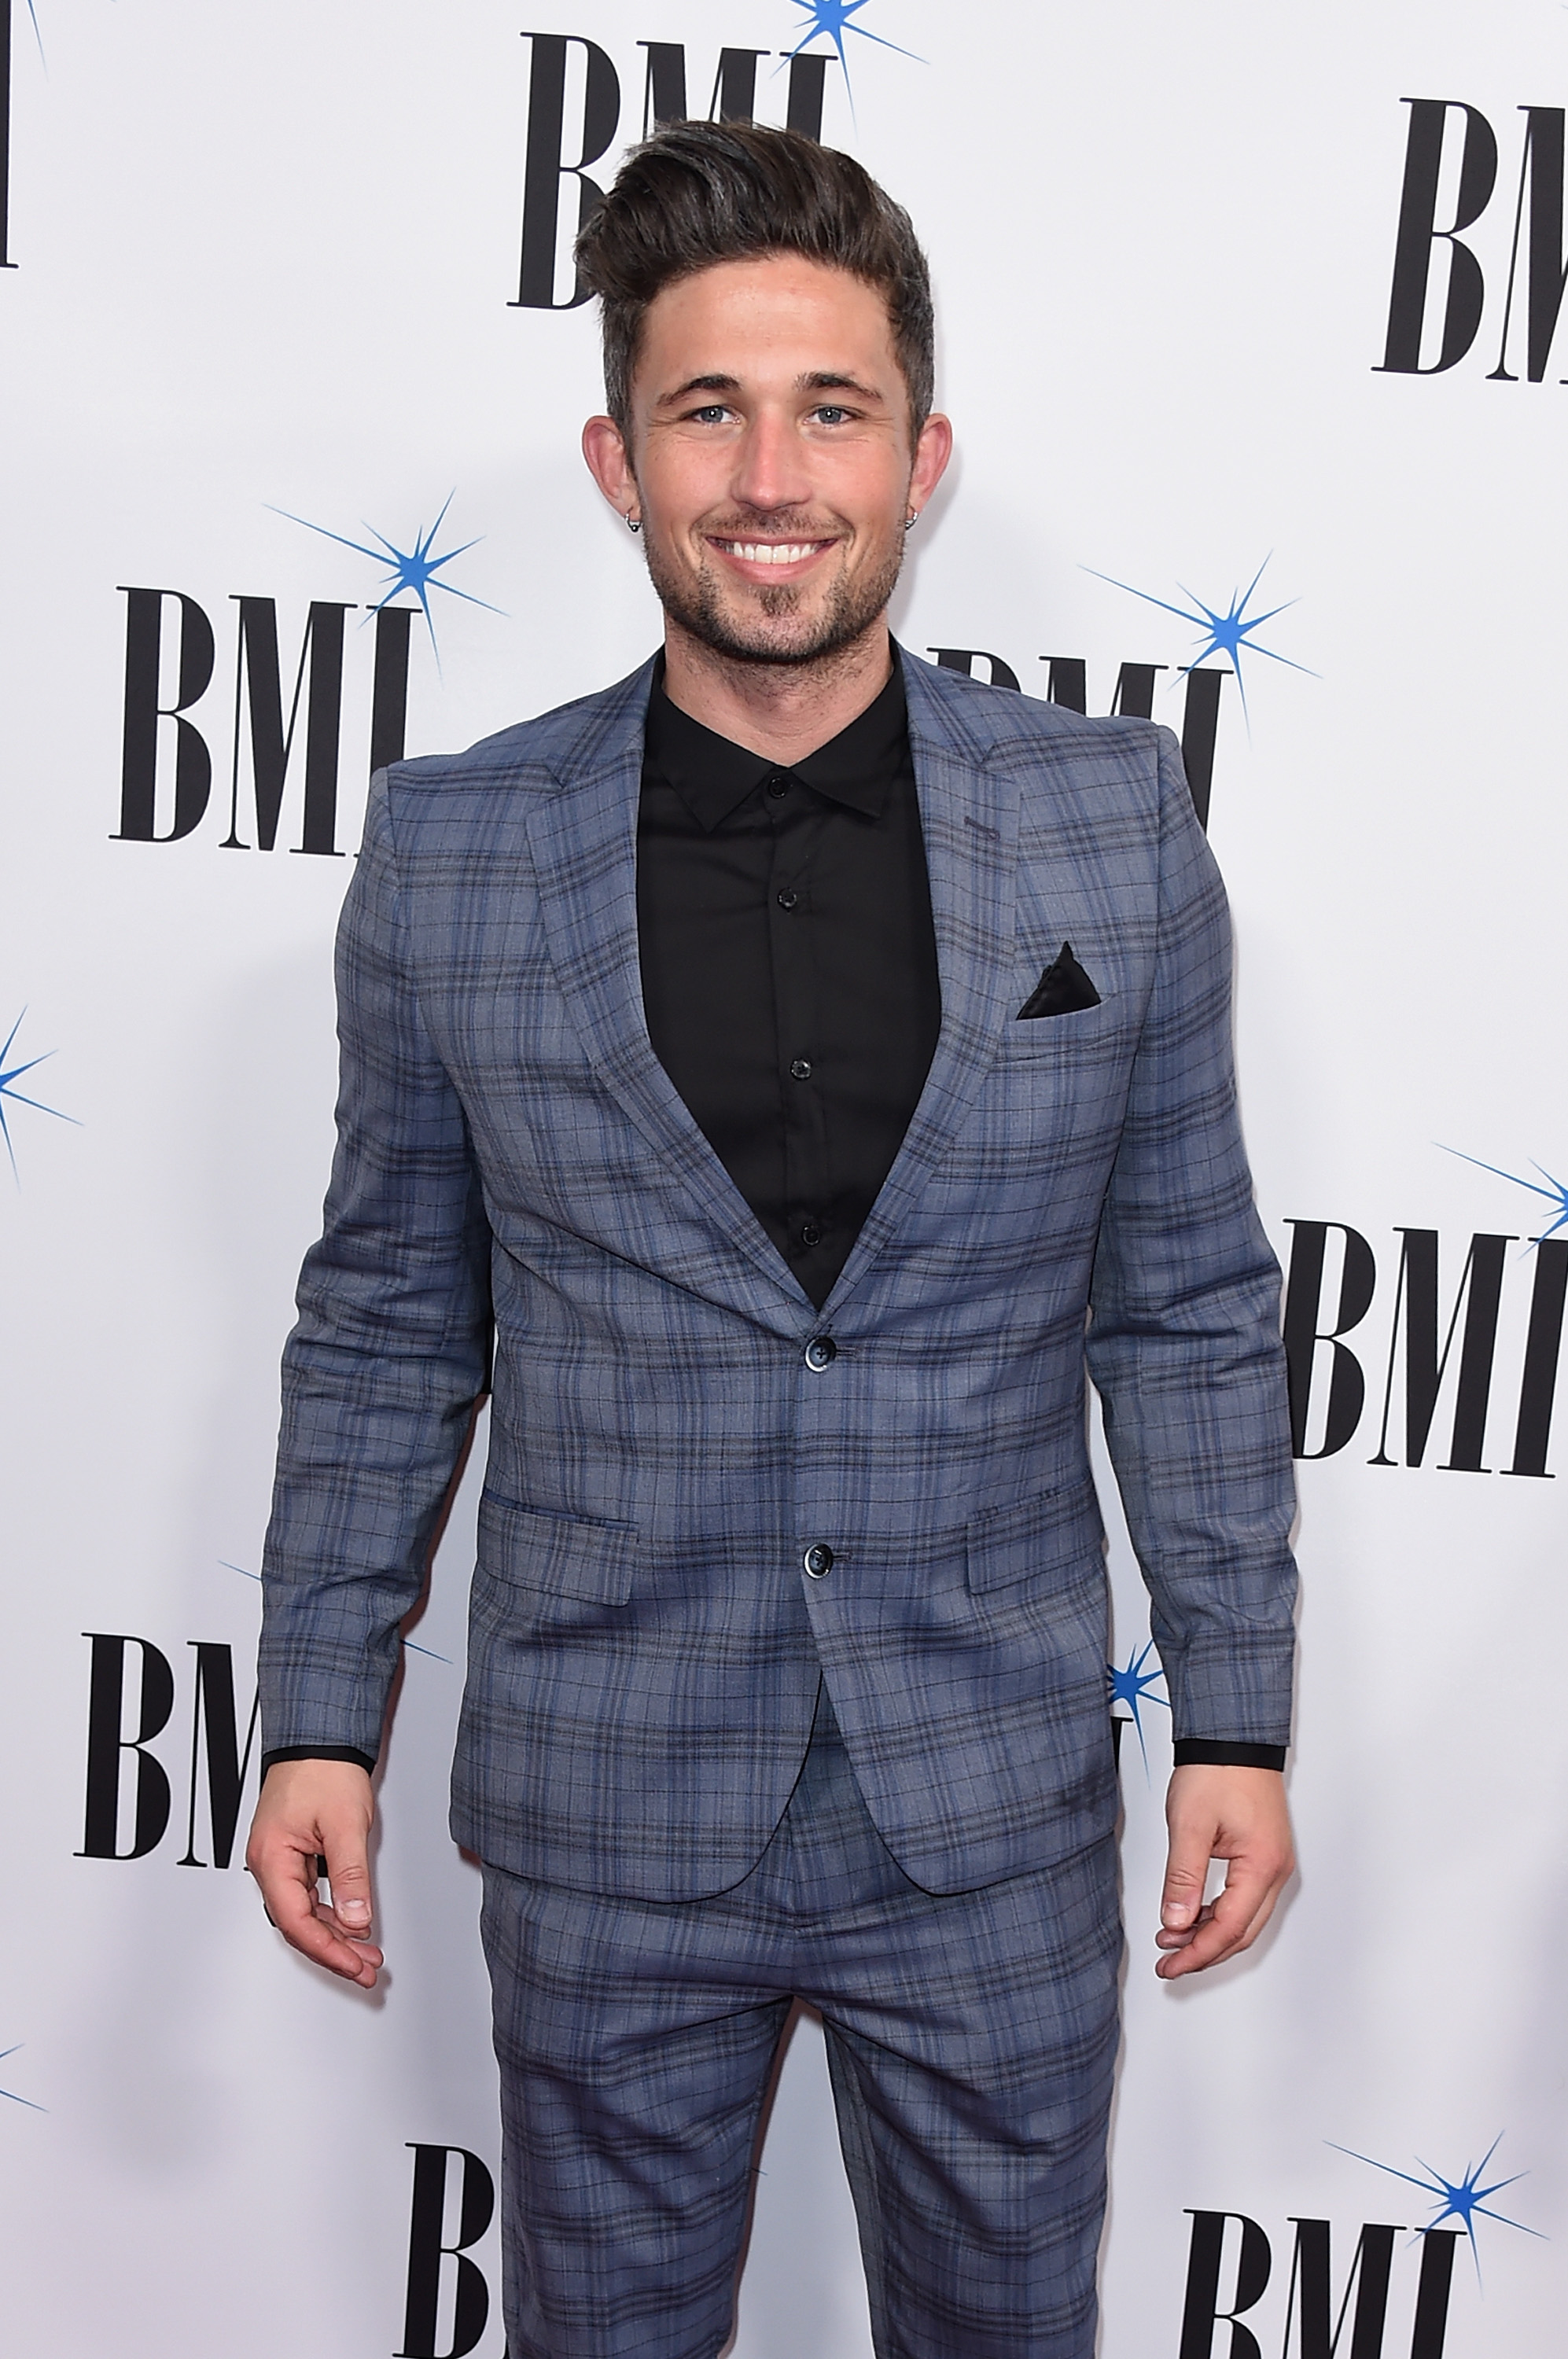 Michael Ray Arrested on DUI And Drug Charges In Florida | Access